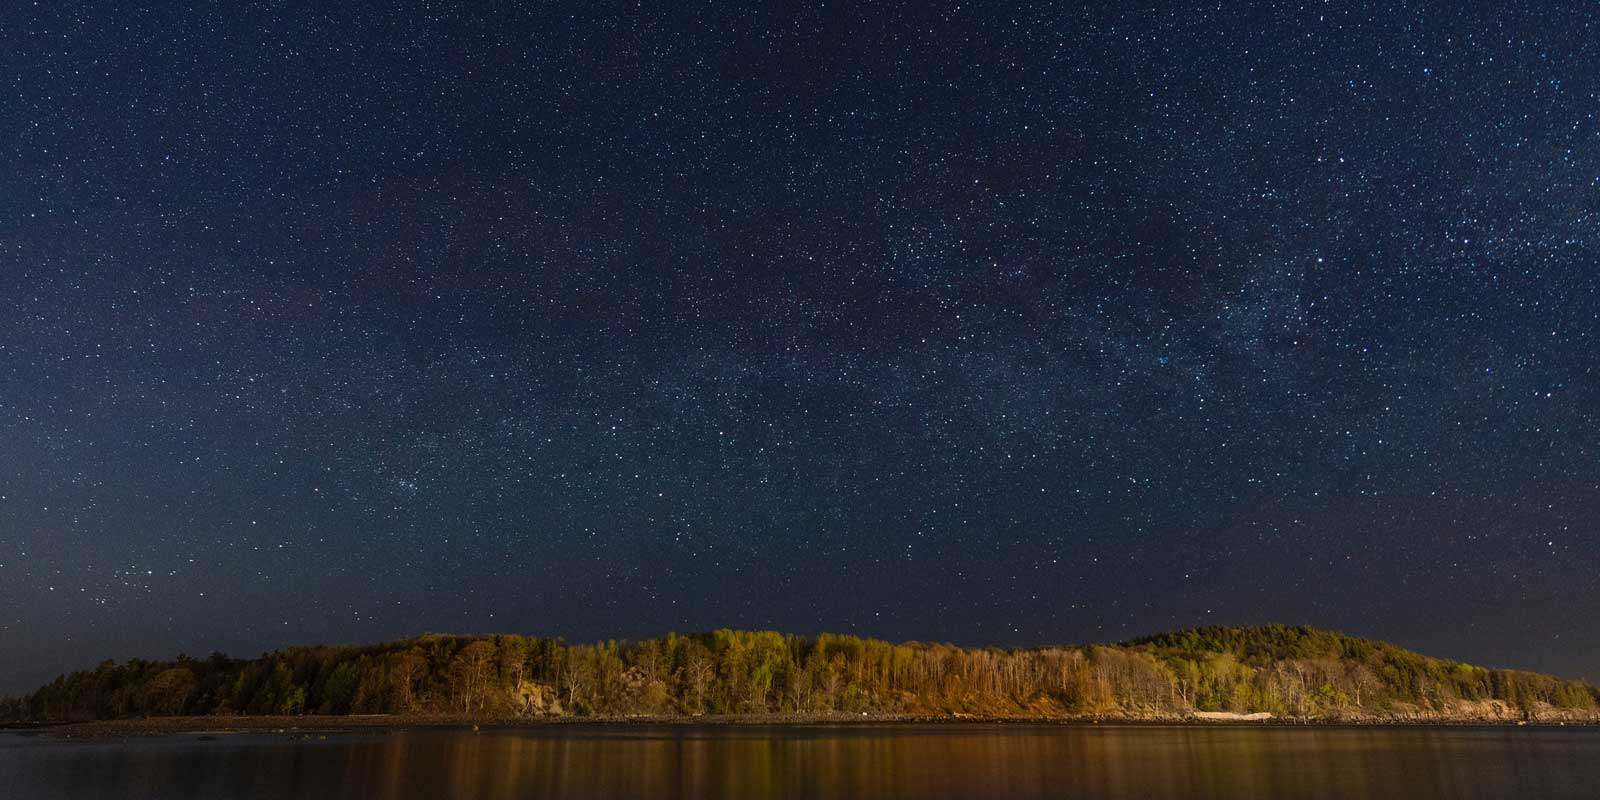 Landscape image of stars in the night sky in Bar Harbor, Maine.